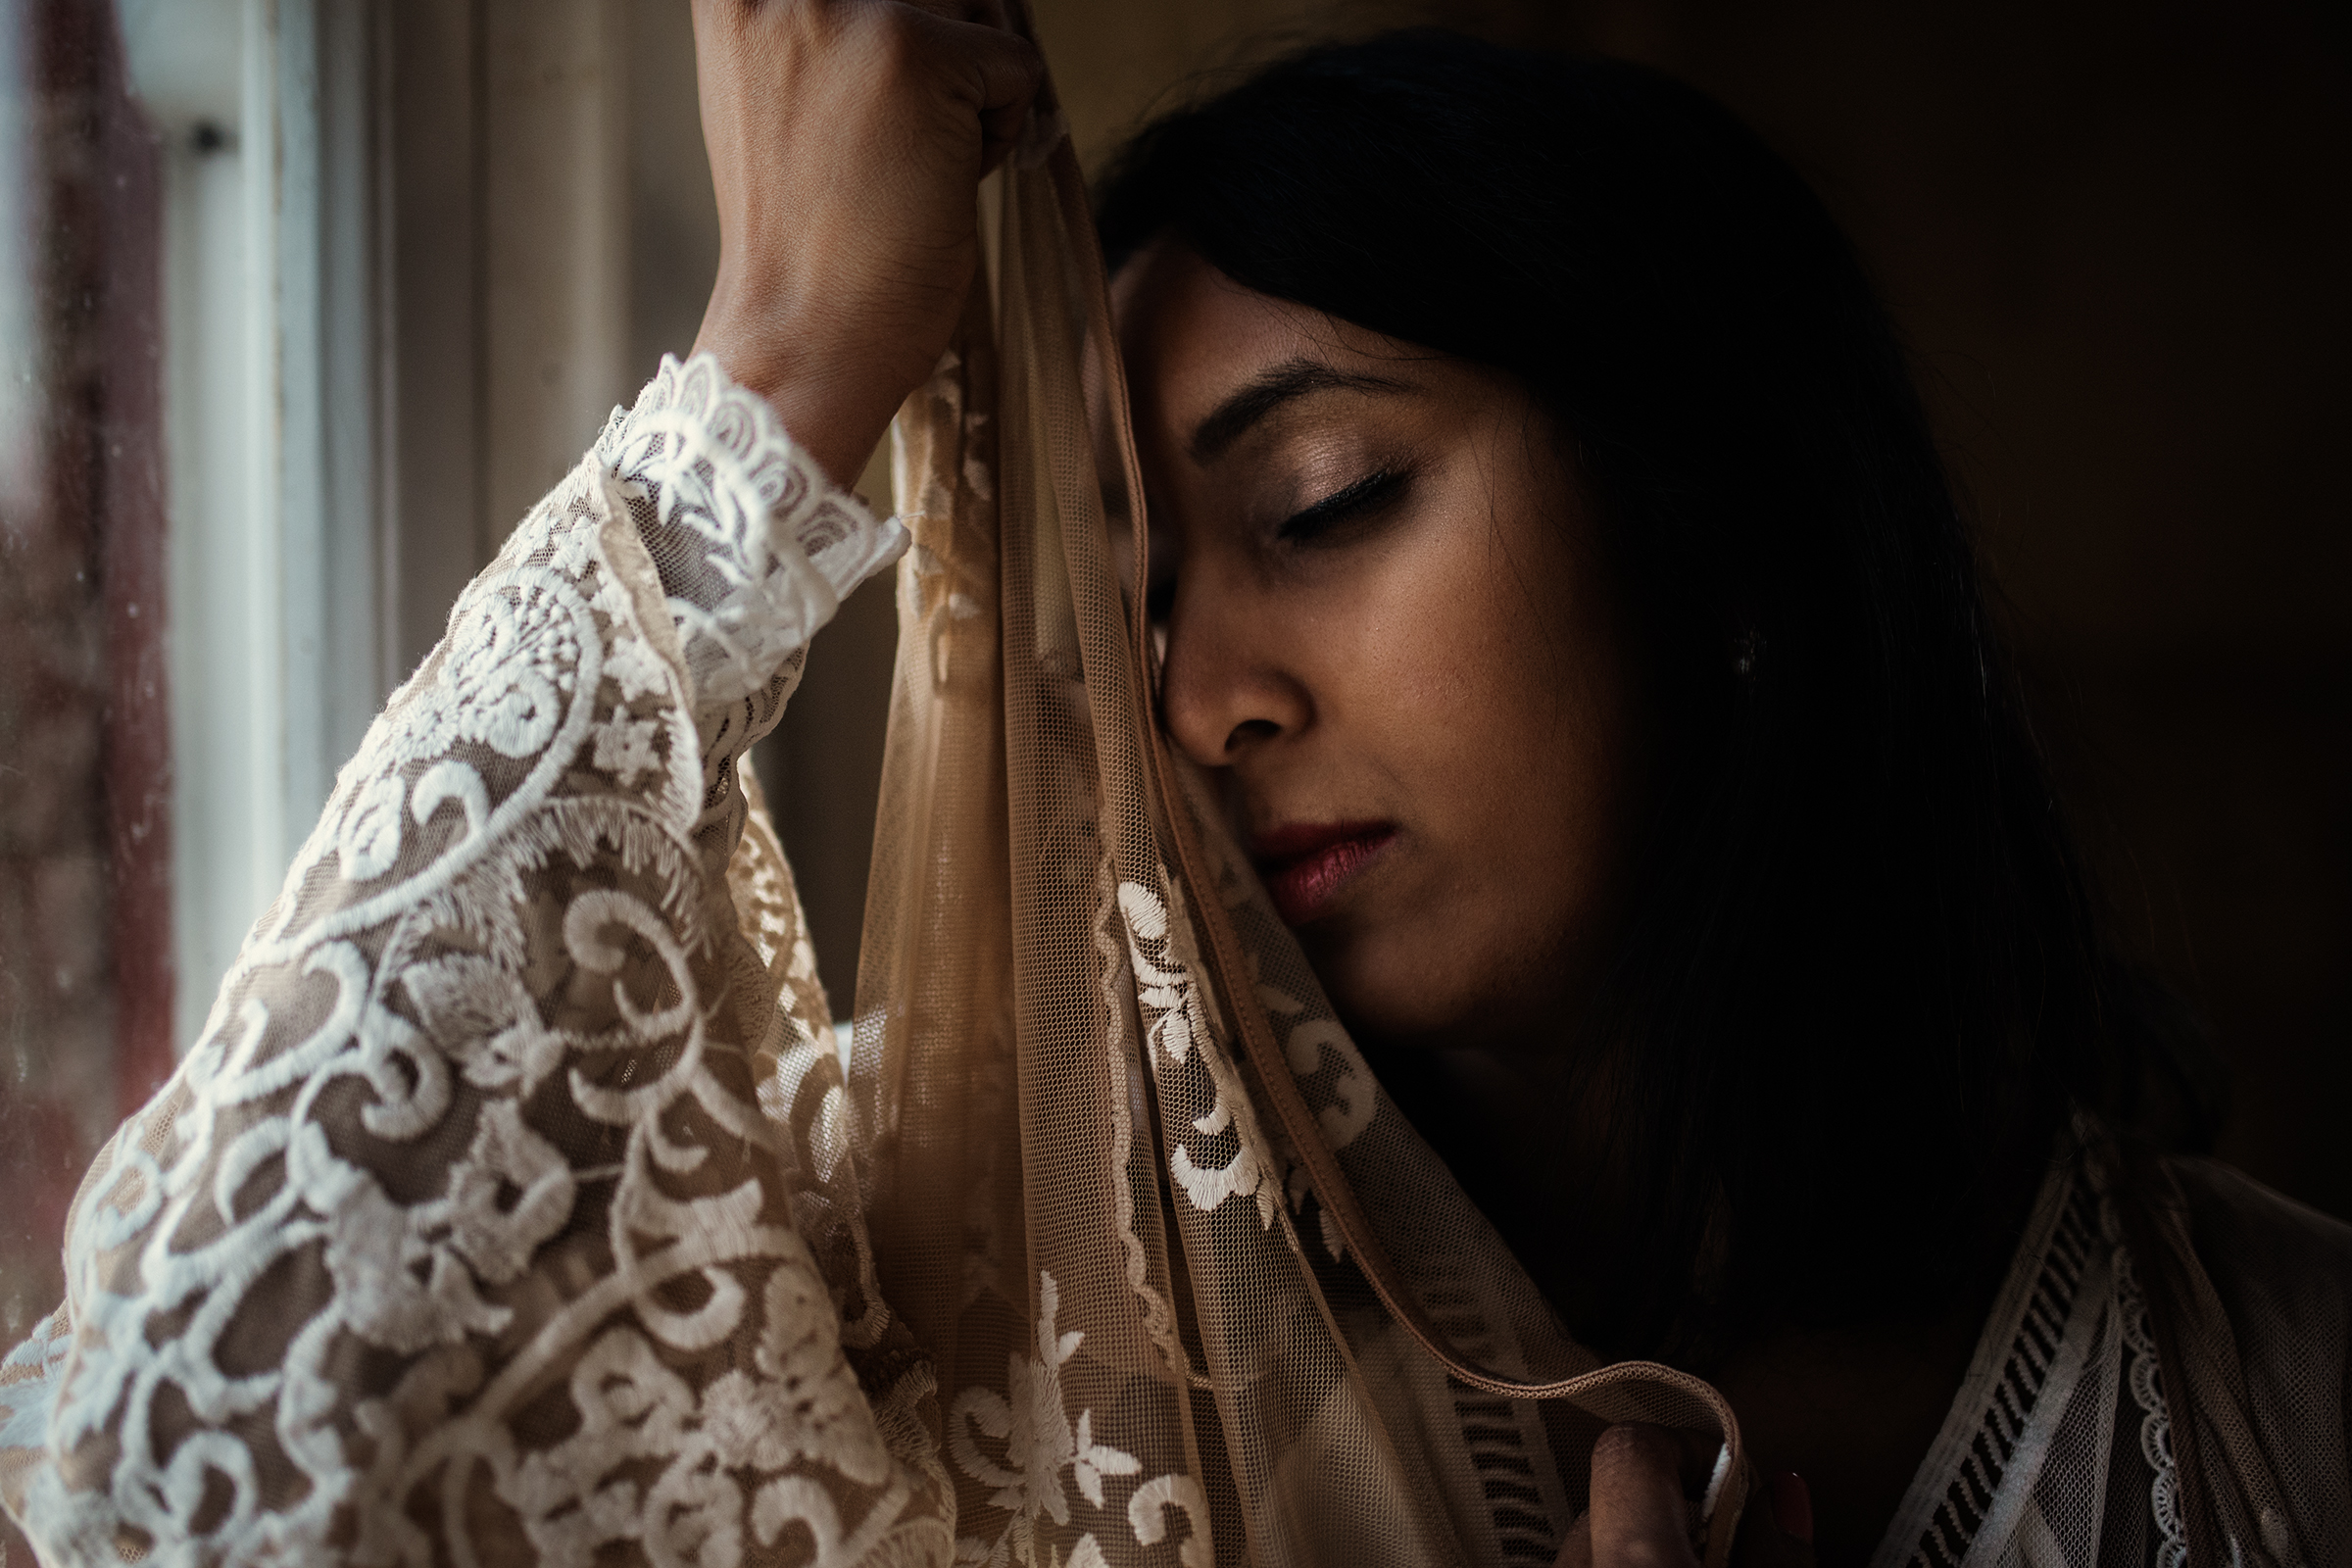 "CHRISTINA MCLAUCHLIN - ""Lift Up the Veils that Darken the Delicate Moon"" (Sarojini Naidu)   35mm, ISO 640, f/1.4, 1/2000"